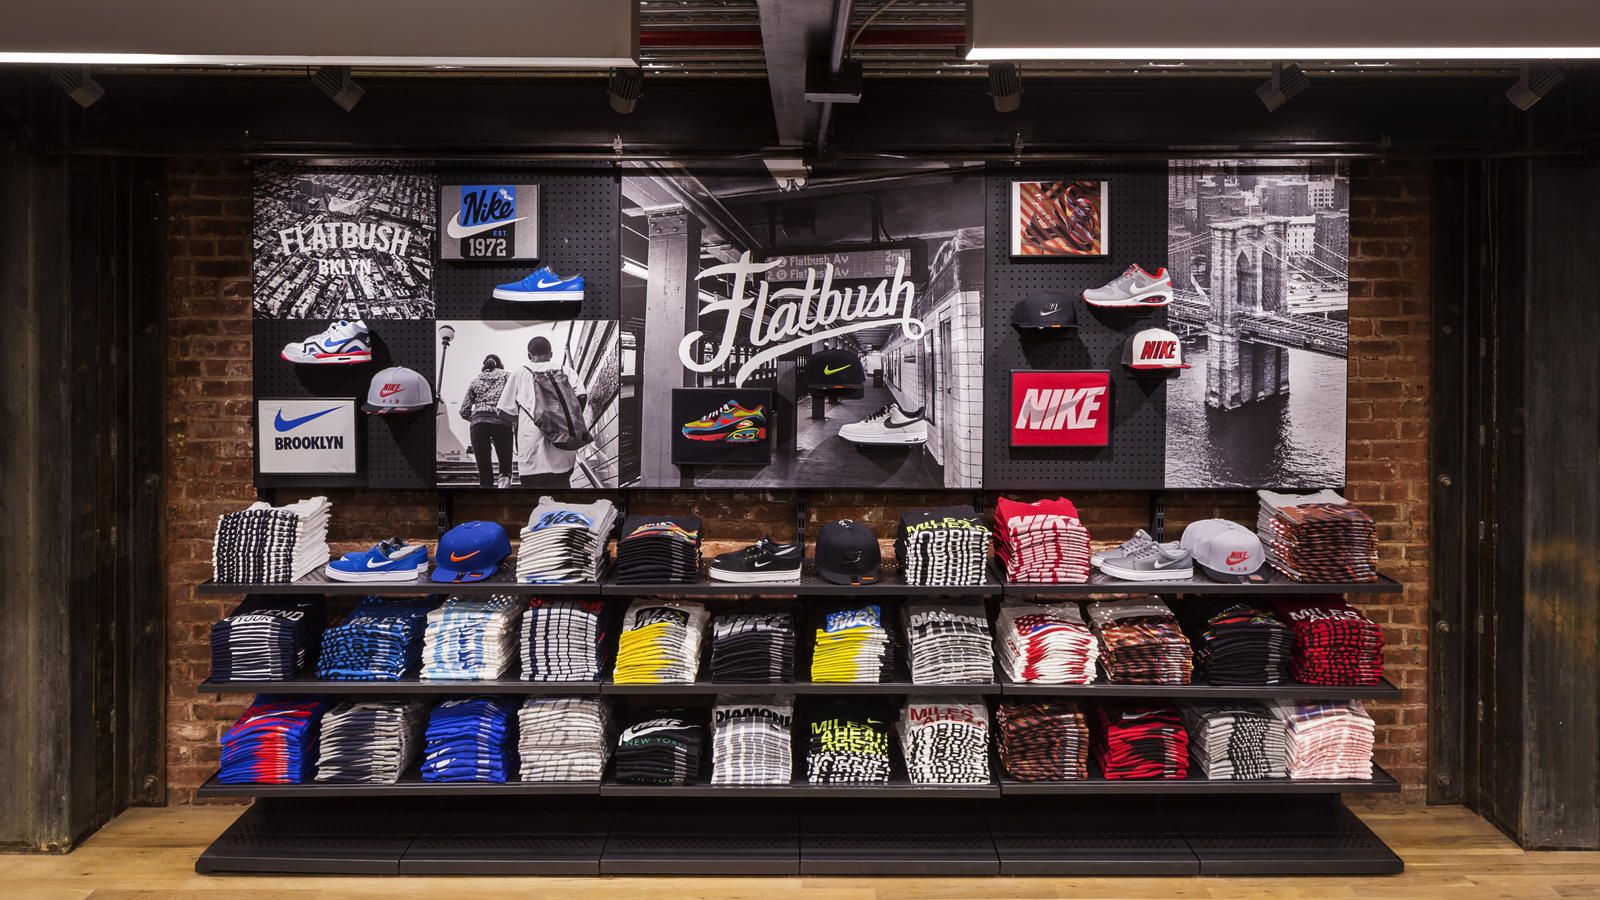 Cortar sociedad Redondear a la baja  Nostrand and Flatbush: Nike Opens First NYC Community Store in the Heart of  Brooklyn | Nike retail, Retail store design, Design store